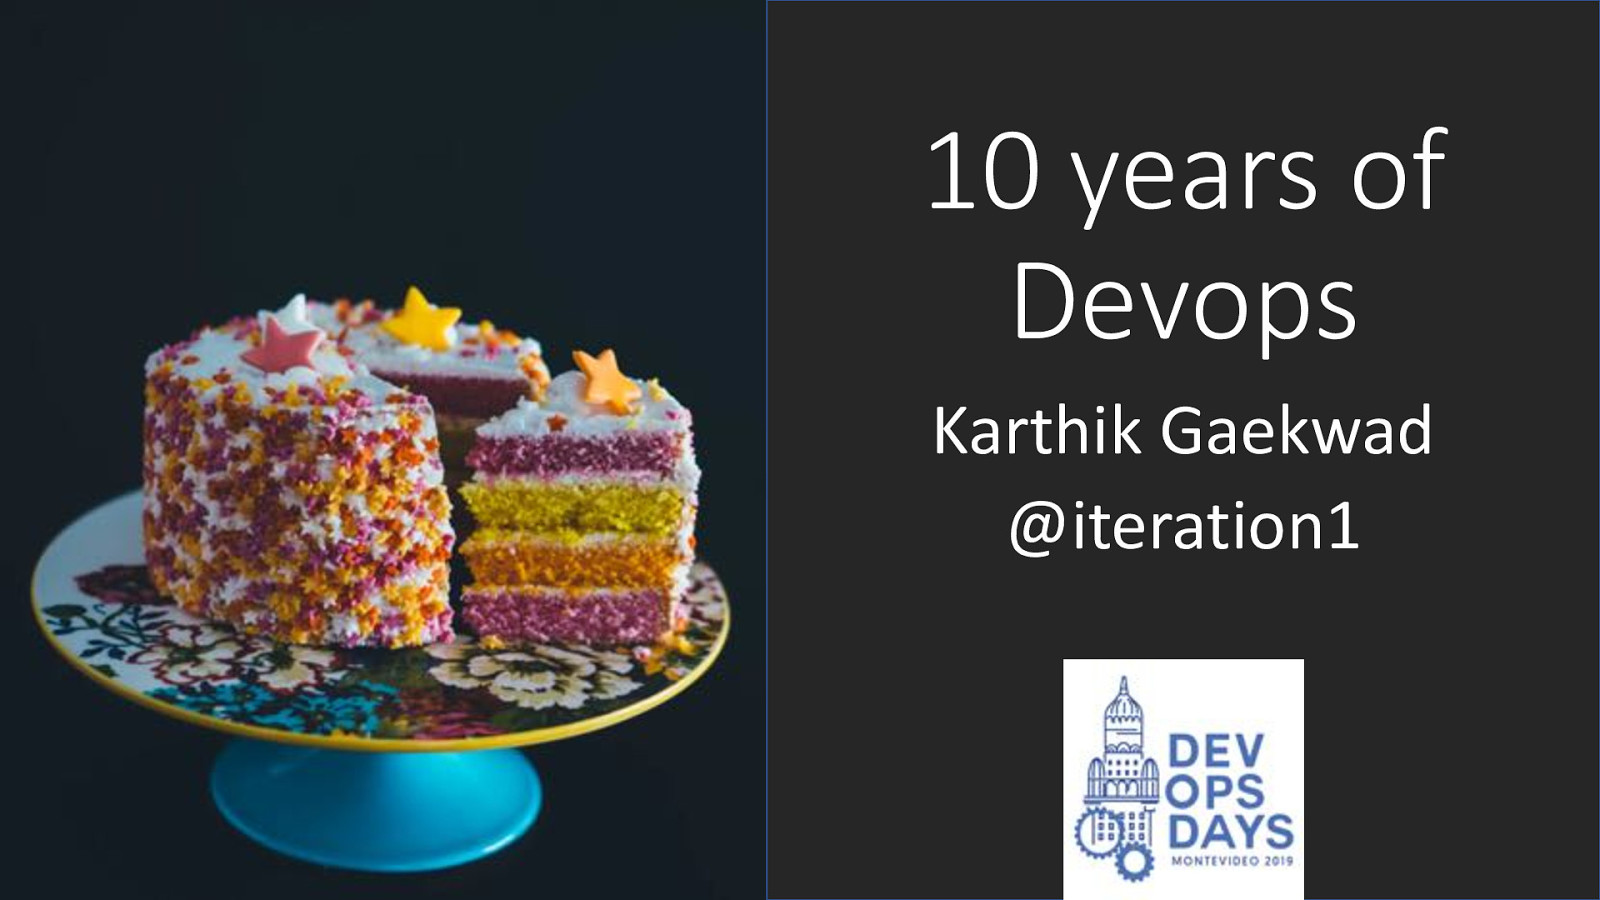 10 years of Devops